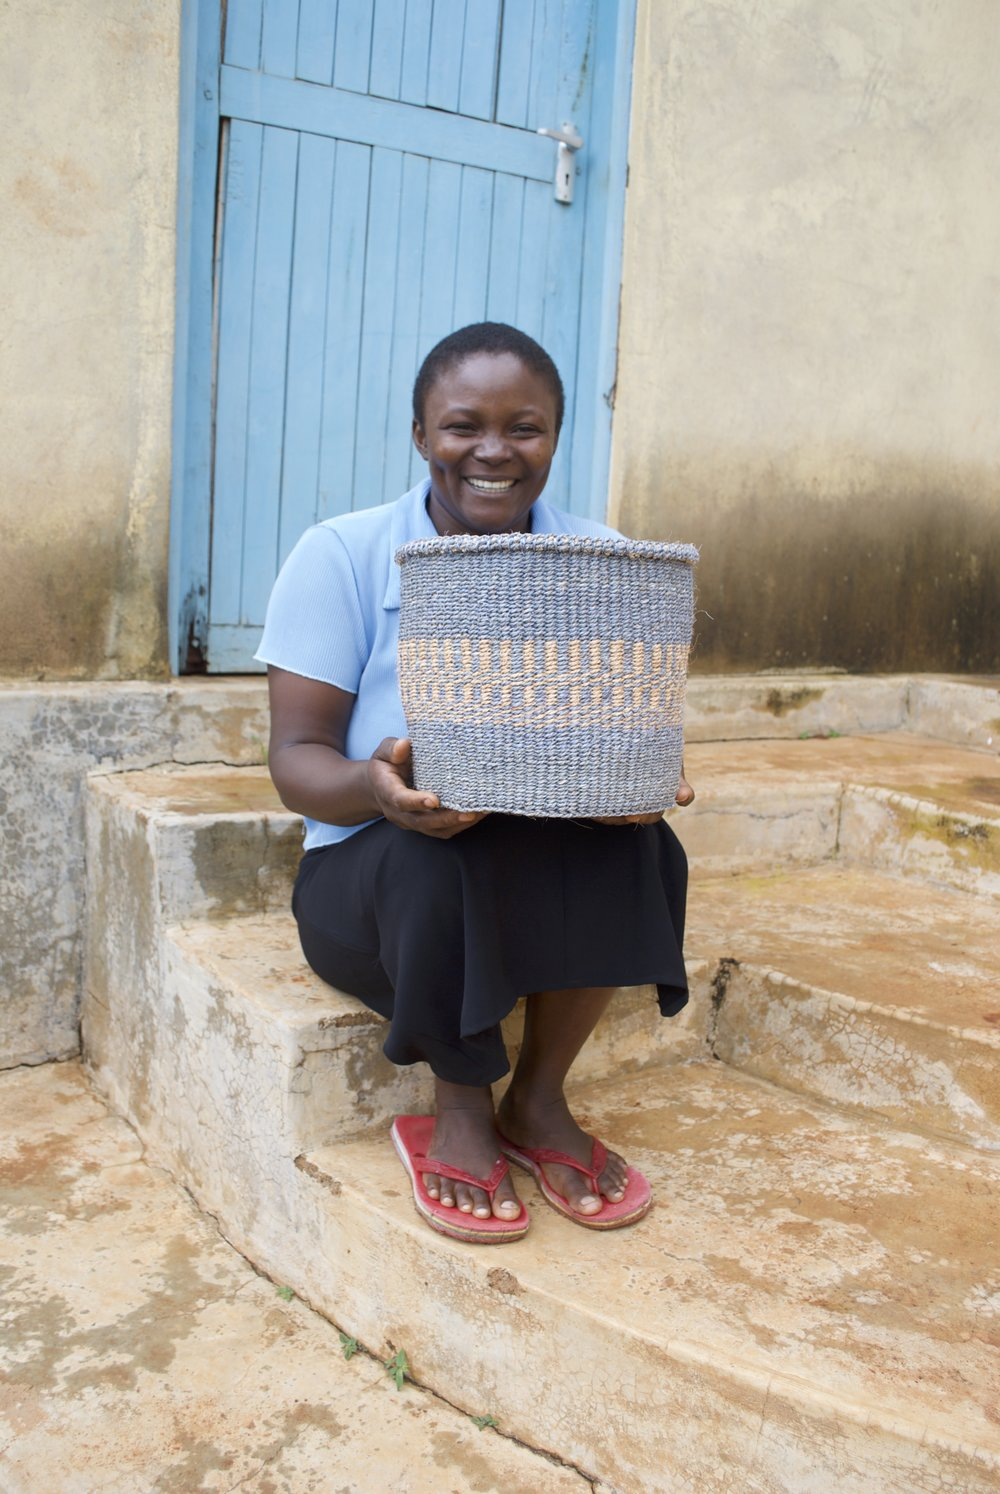 """ I learnt how to weave baskets from my mother. I joined Rukanga Basket Weavers because the leaders work for the betterment of their members. The group is hardworking and united and many of my baskets have been sold through my association with them. The profits I get I use to educate my children and buy food for my family.""  Eunice - Rukanga"